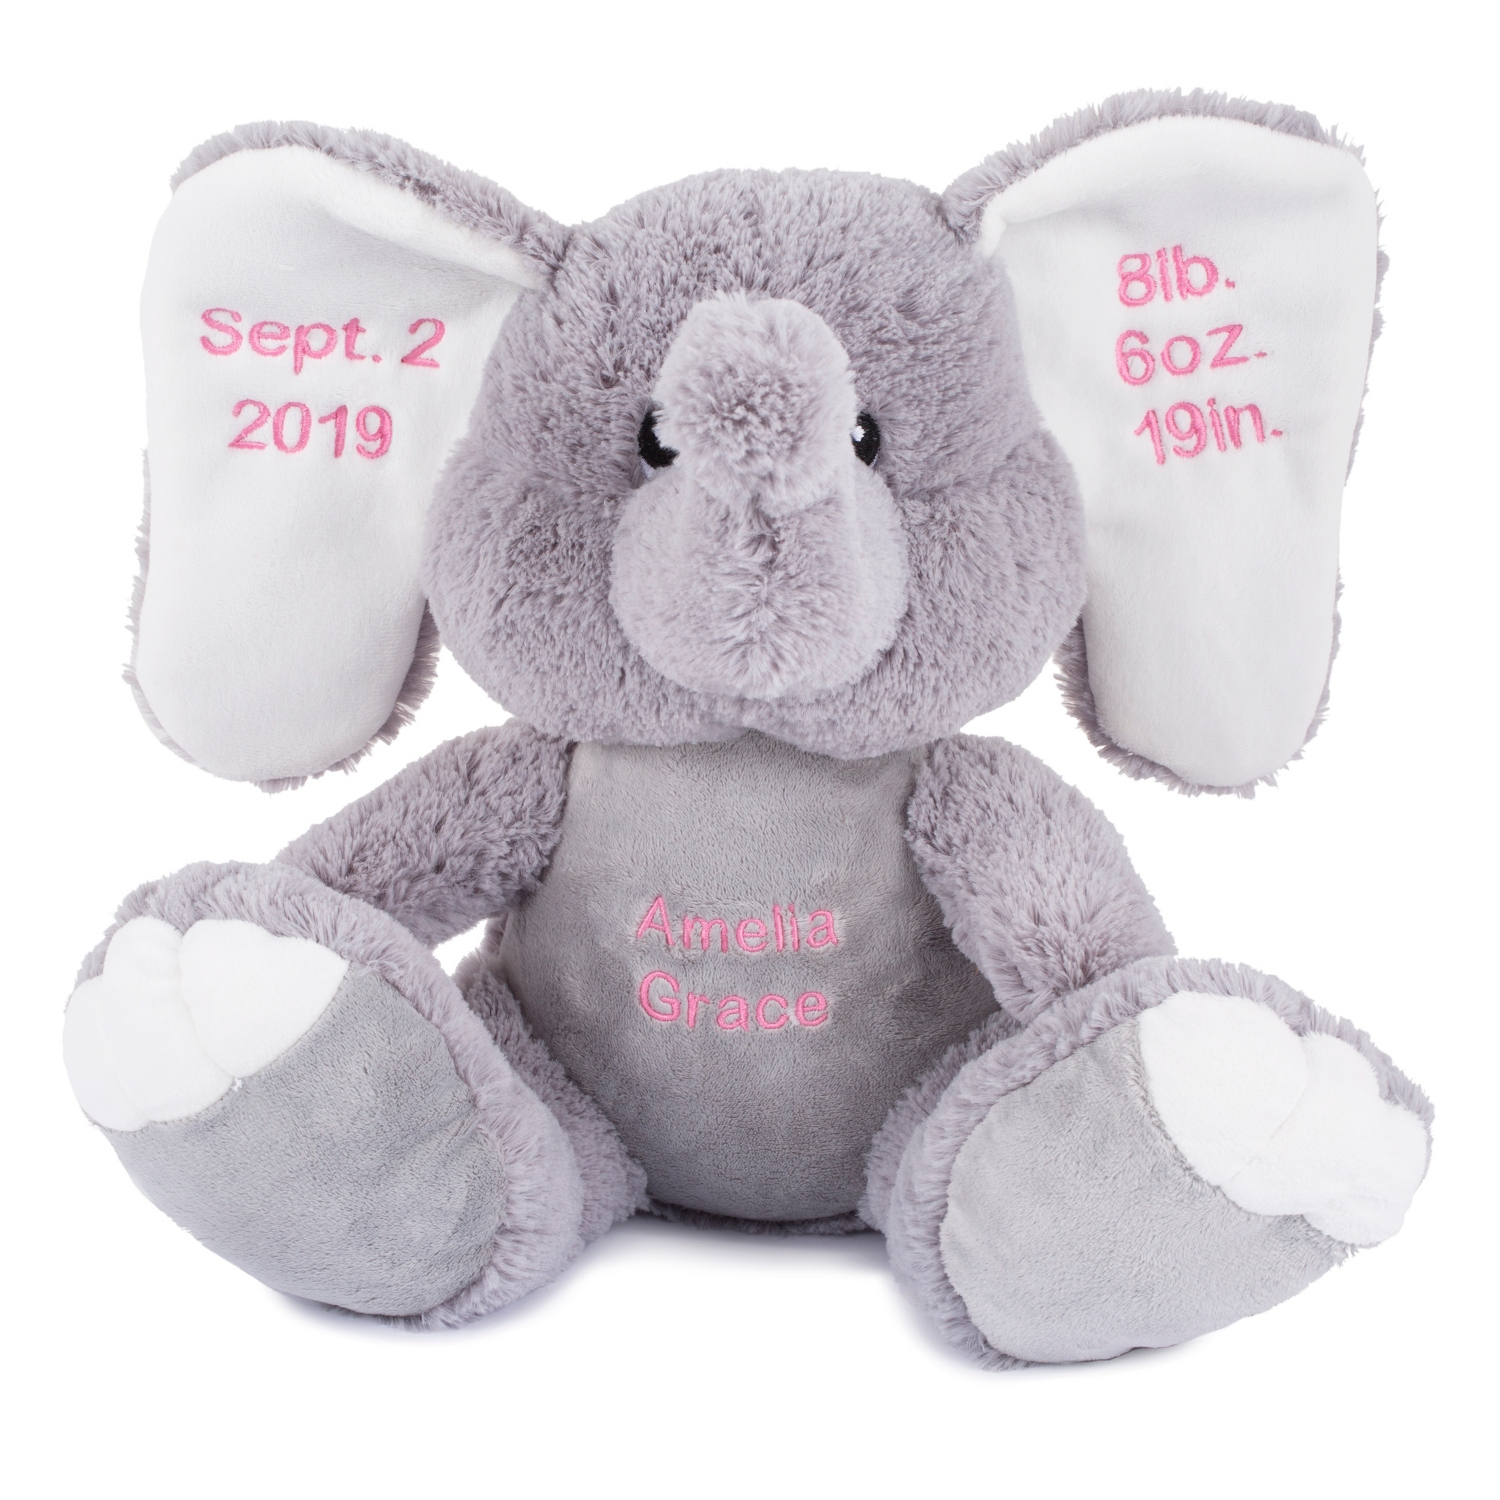 Personalized gifts for babies and newborns at things remembered plush elephant plush elephant negle Gallery